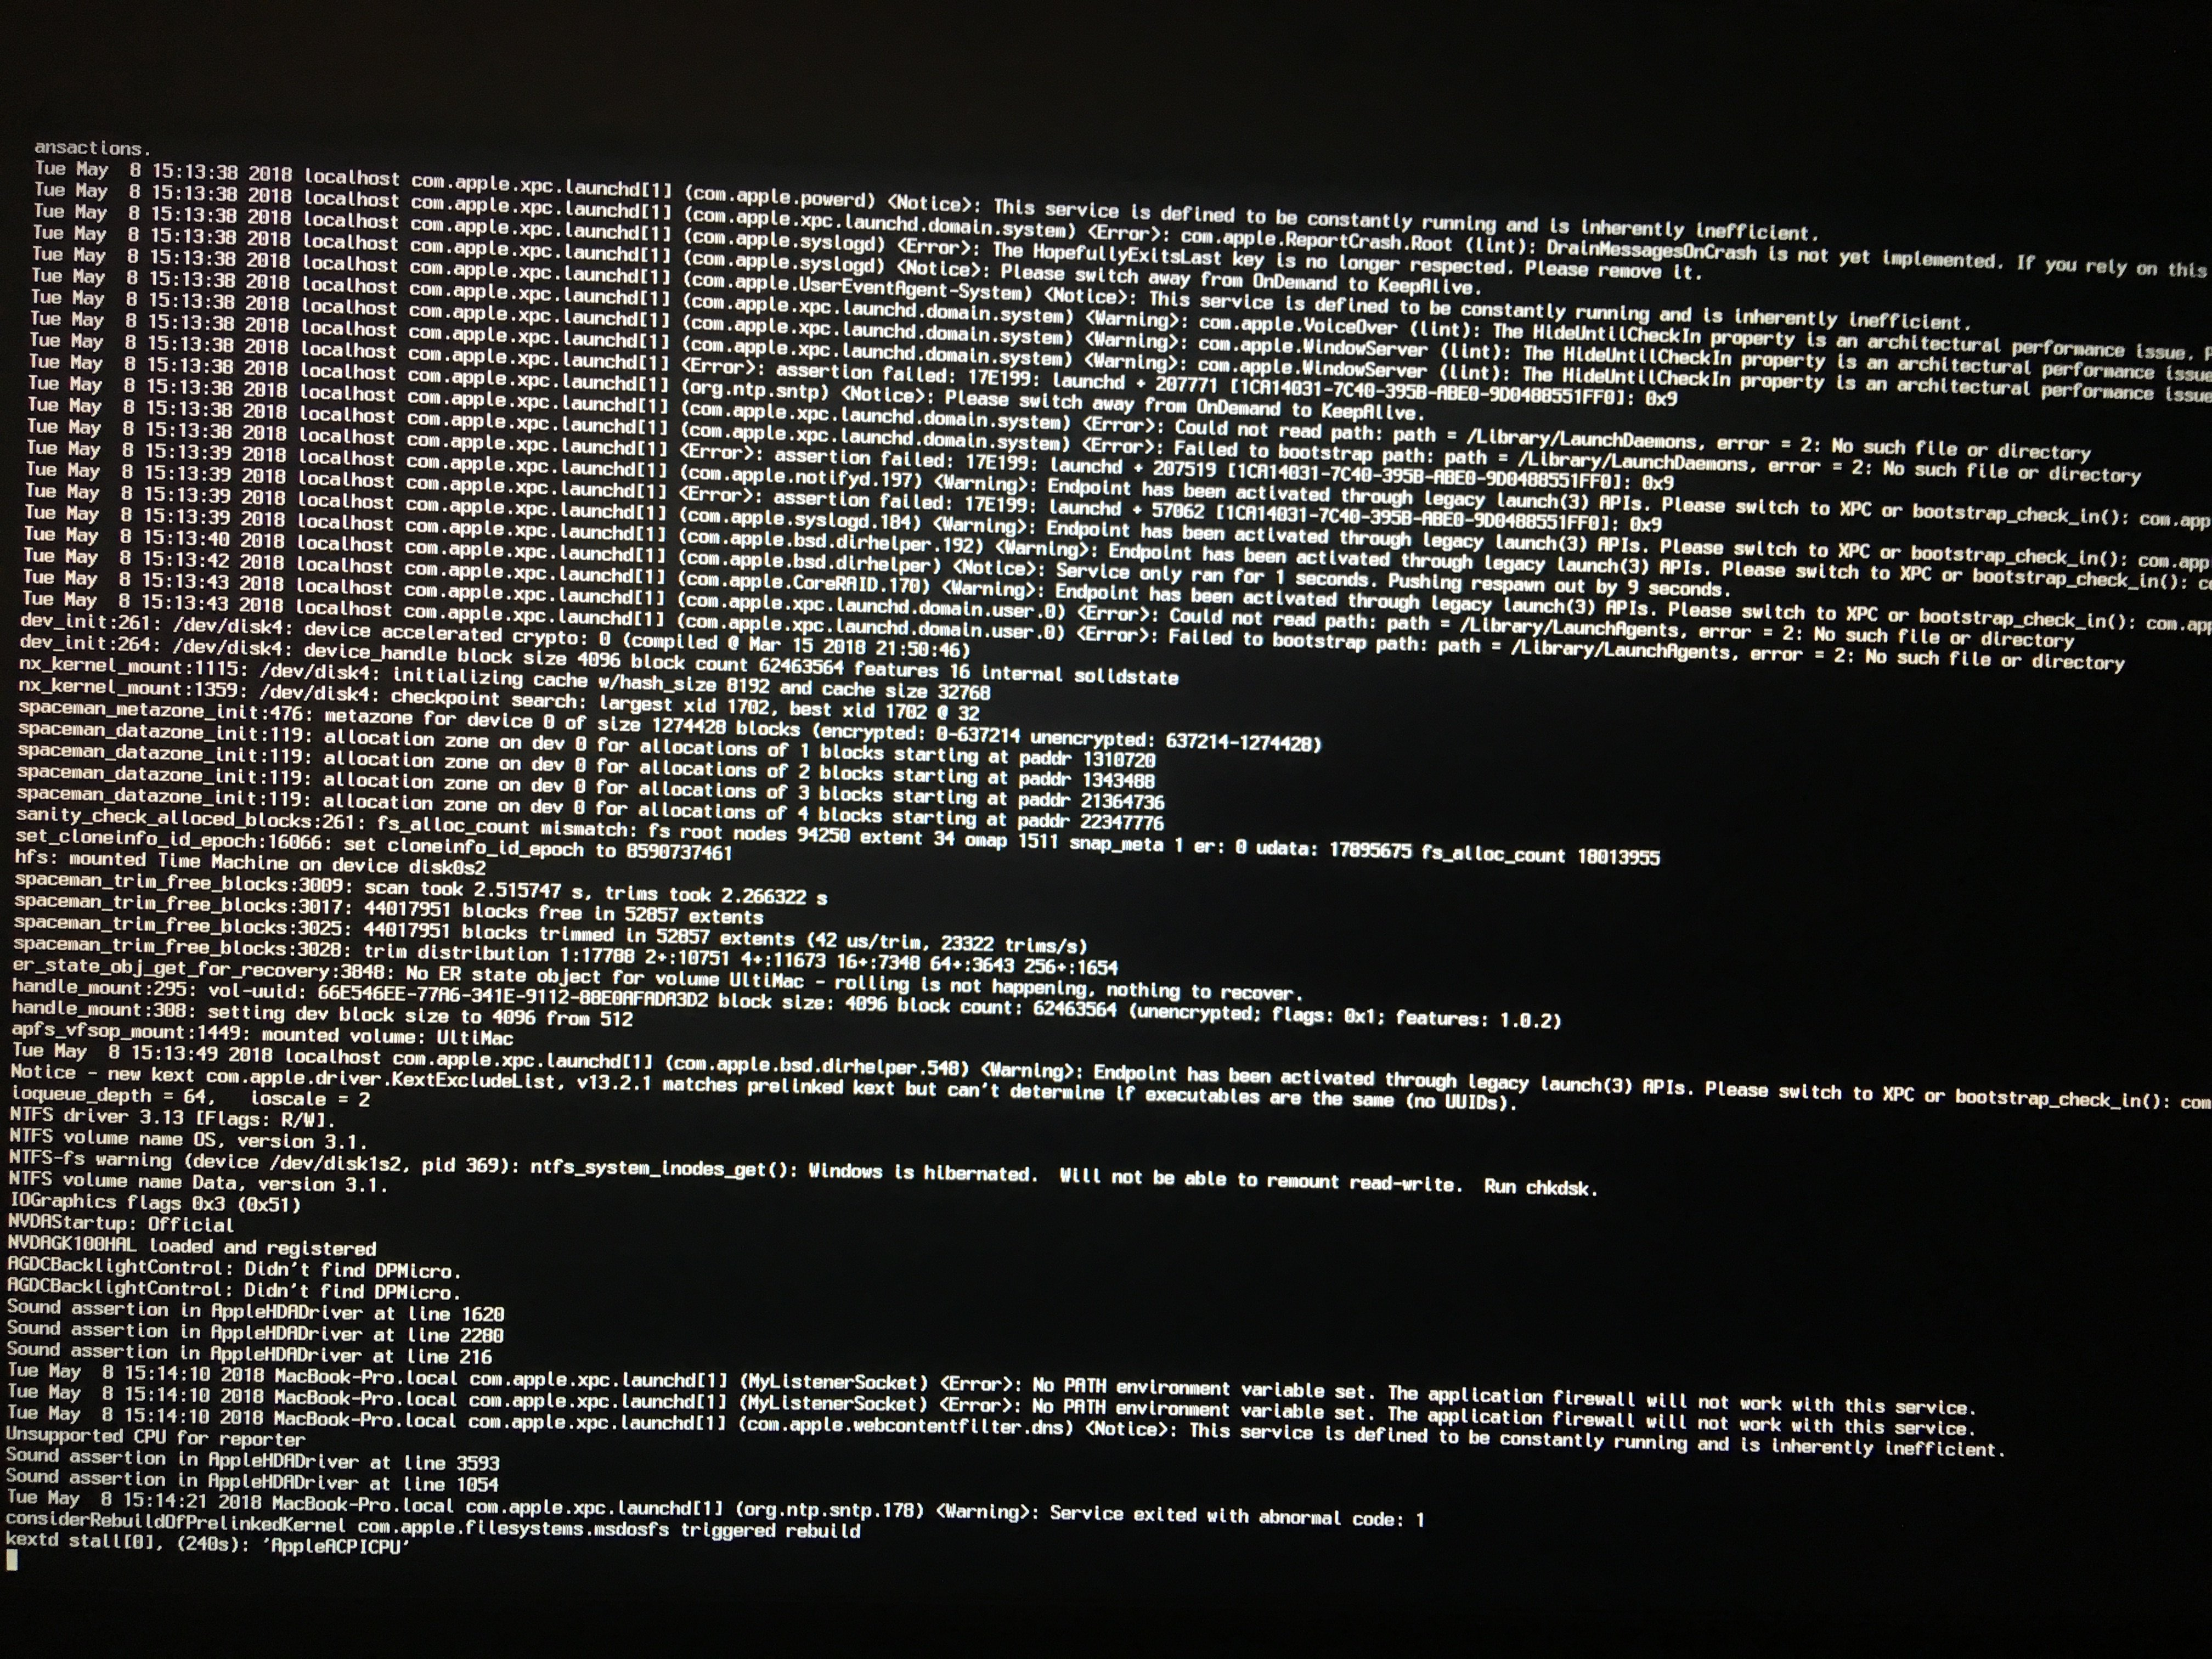 SOLVED] M4800 High Sierra update - lost macOS partition in